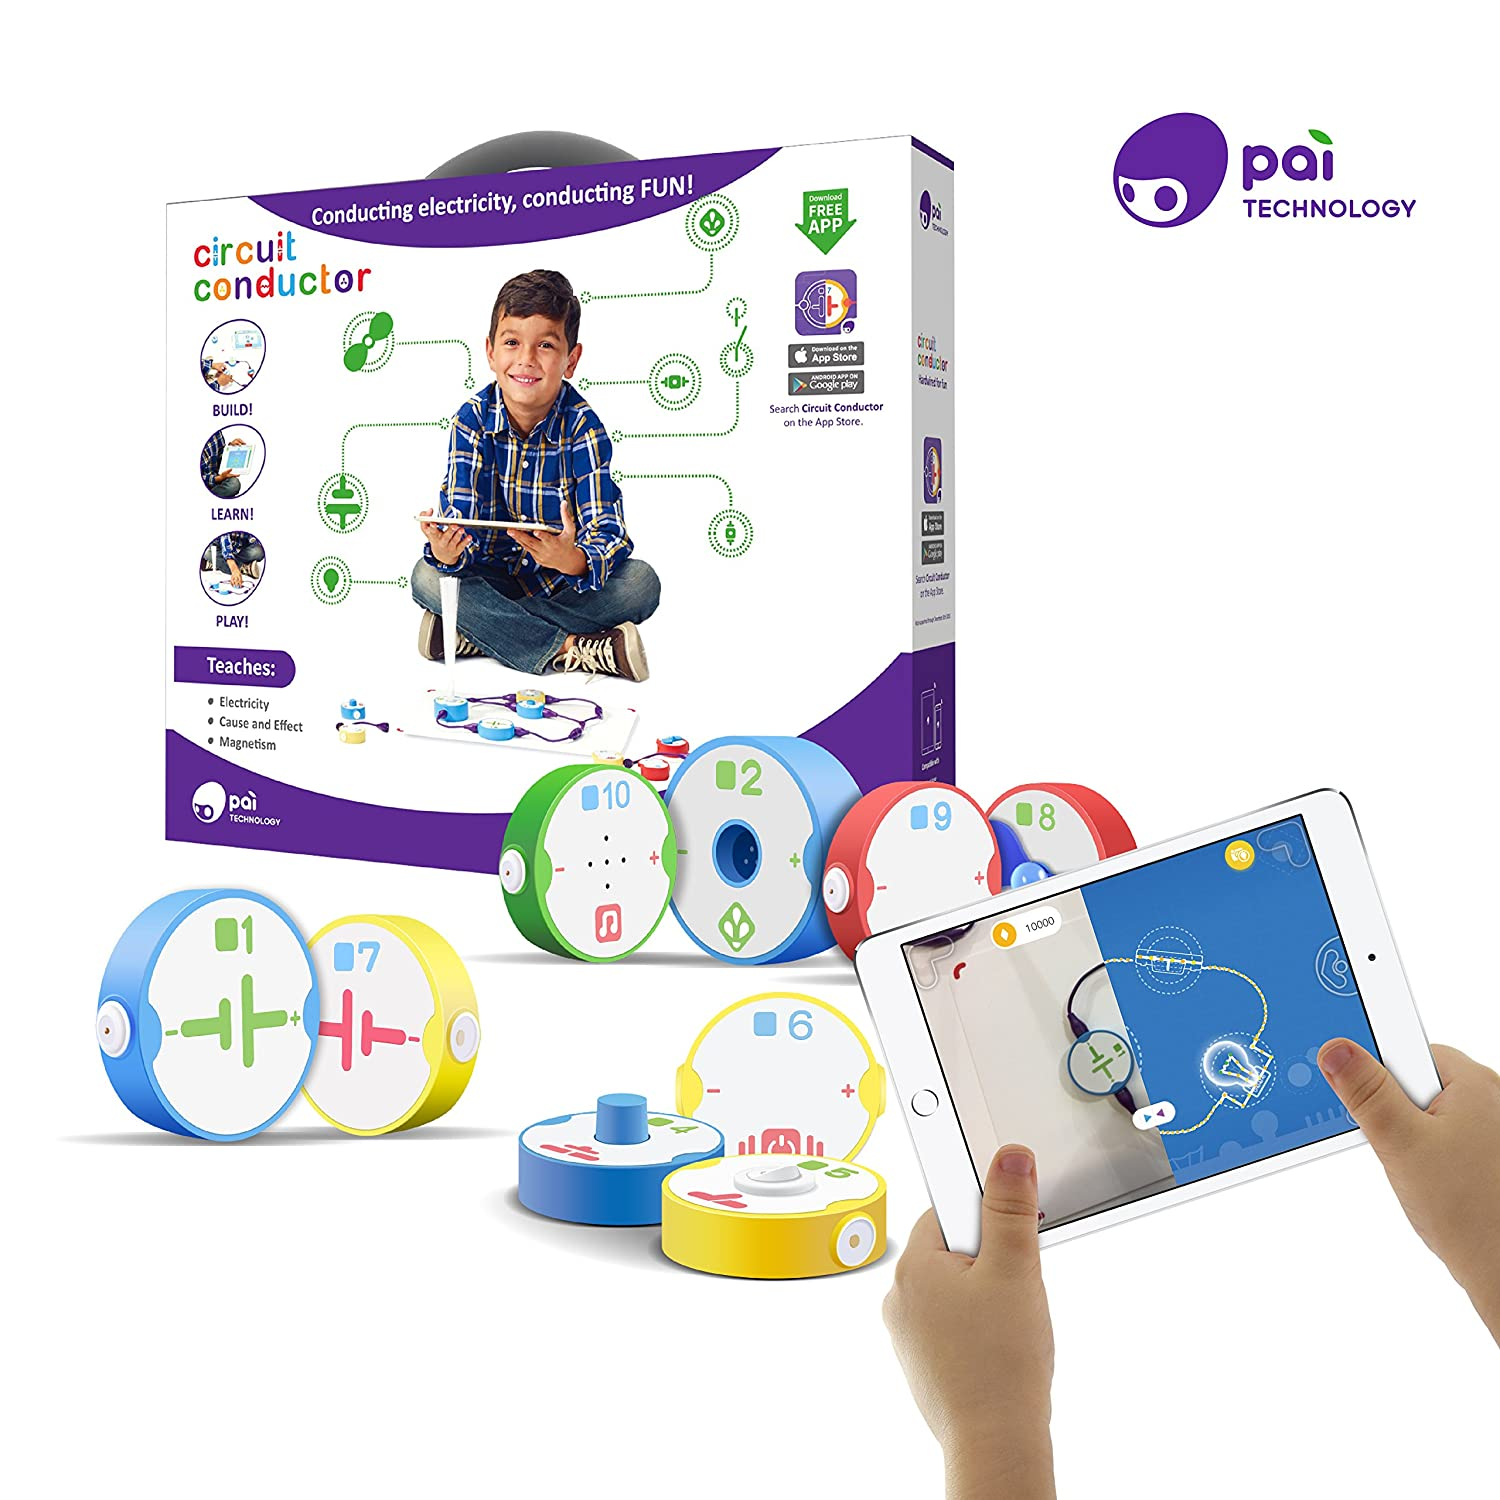 Pai Technology Circuit Conductor Electricity Learning Parallel Definition For Kids Series Circuits Kit With Free App Toys Games